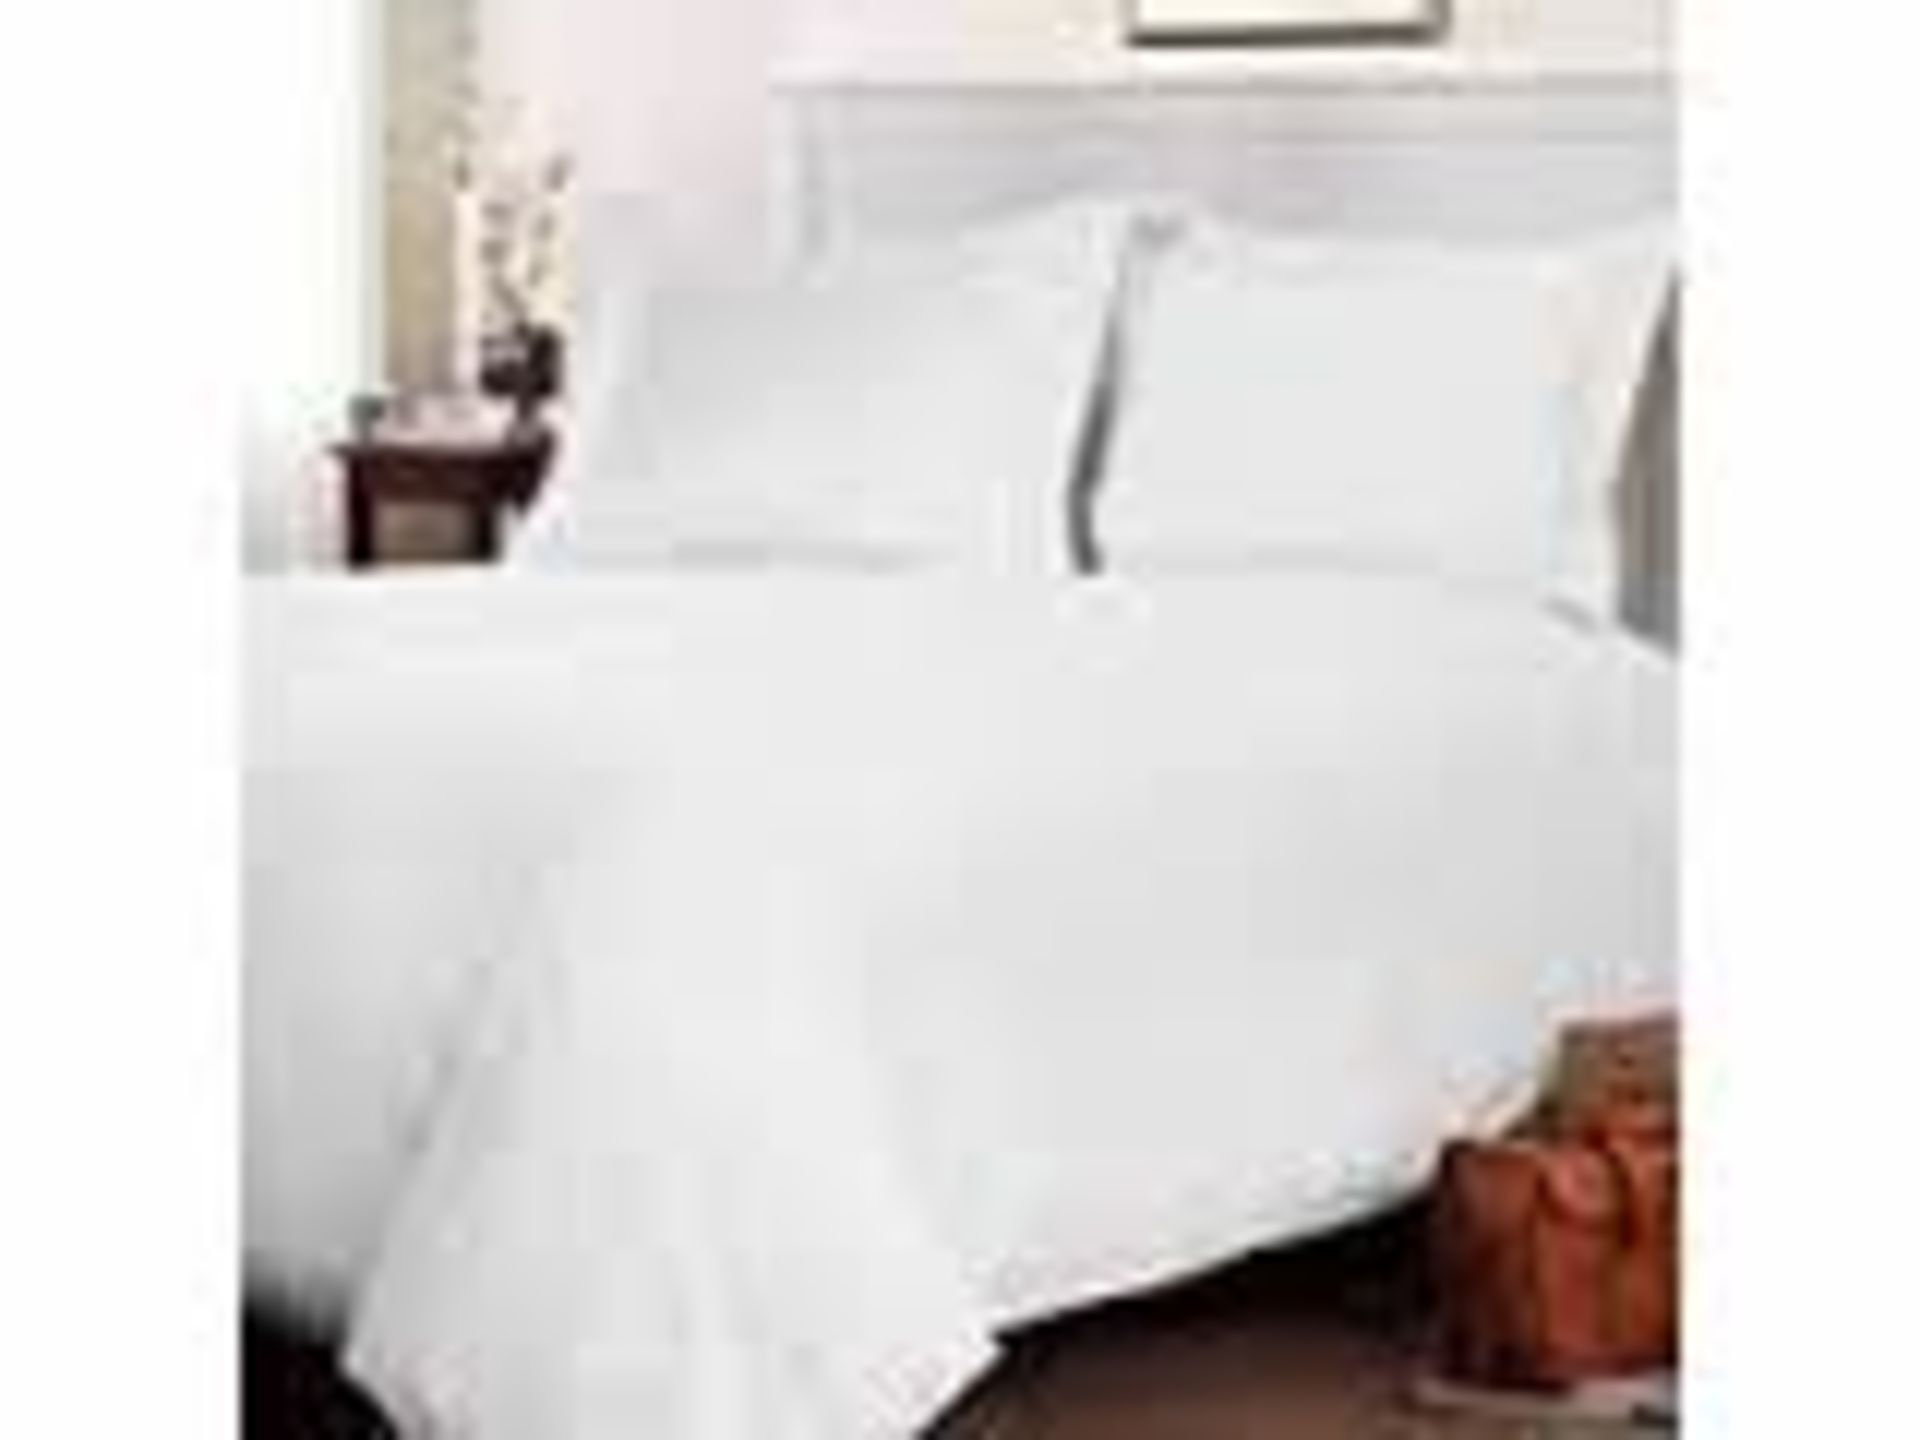 Lot 10243 - V Brand New Luxury Double Bed Plain Dye Fitted Sheets